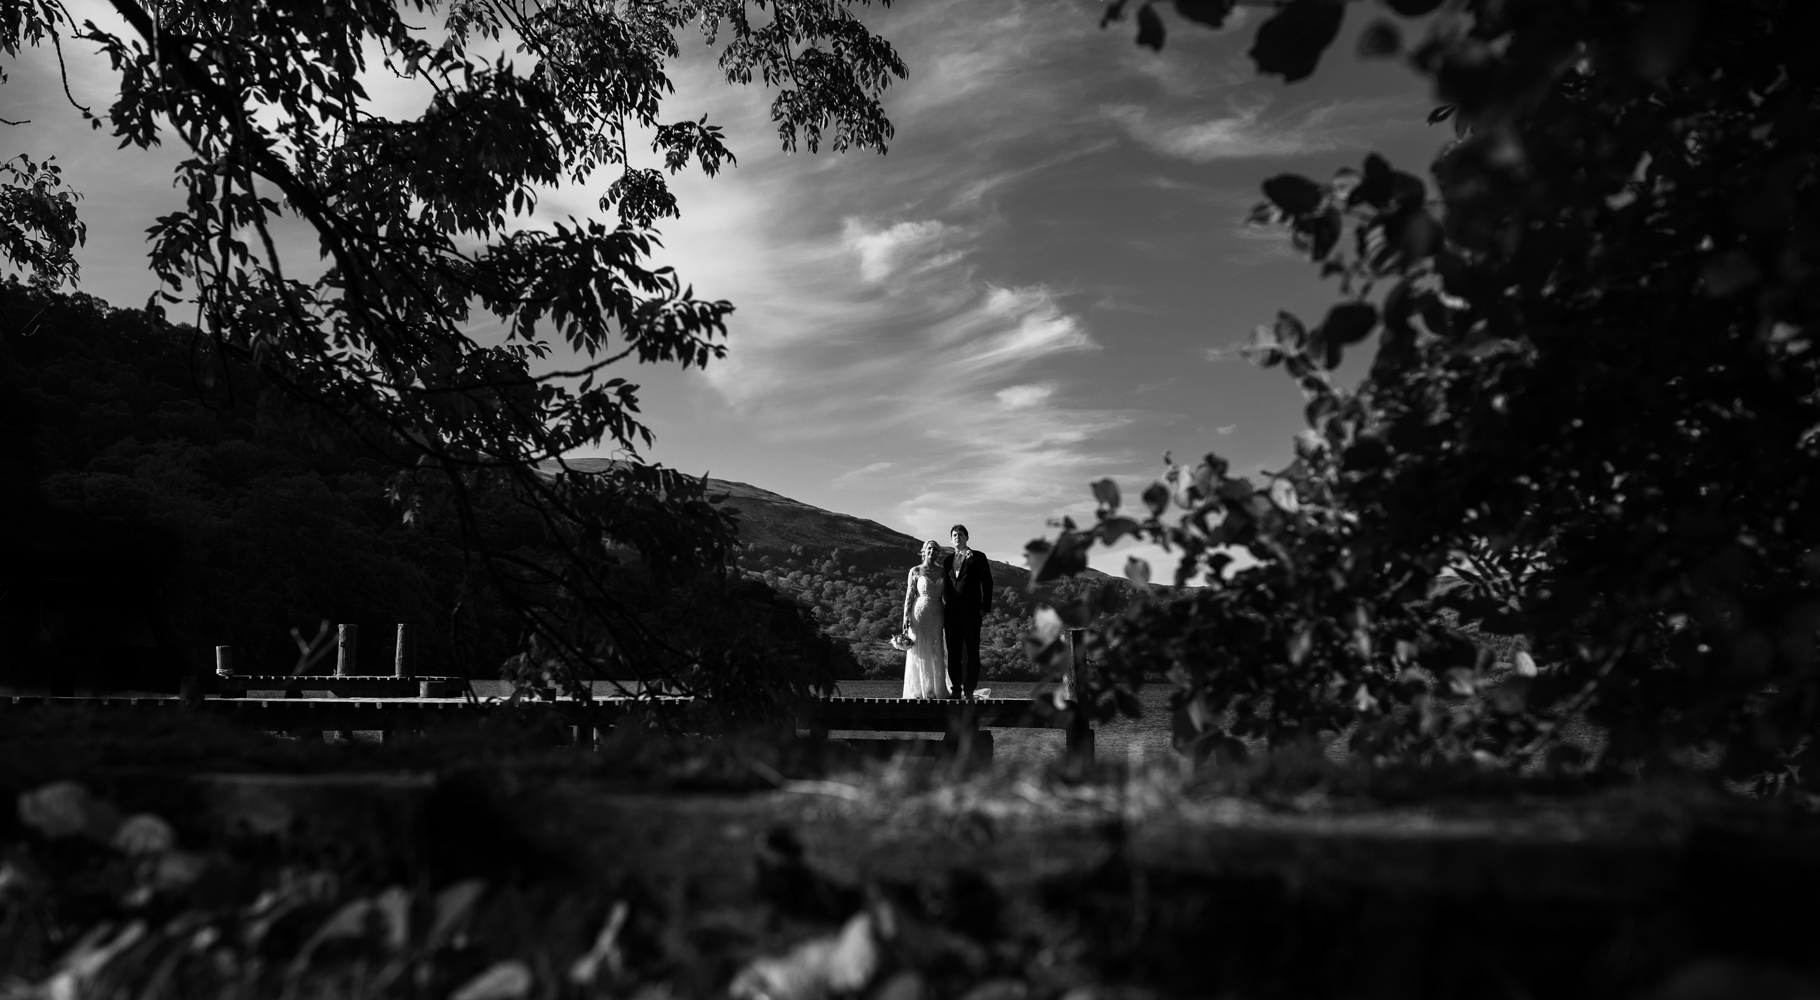 Black and white image of the bride and groom standing on the jetty taken through the trees at the waters edge